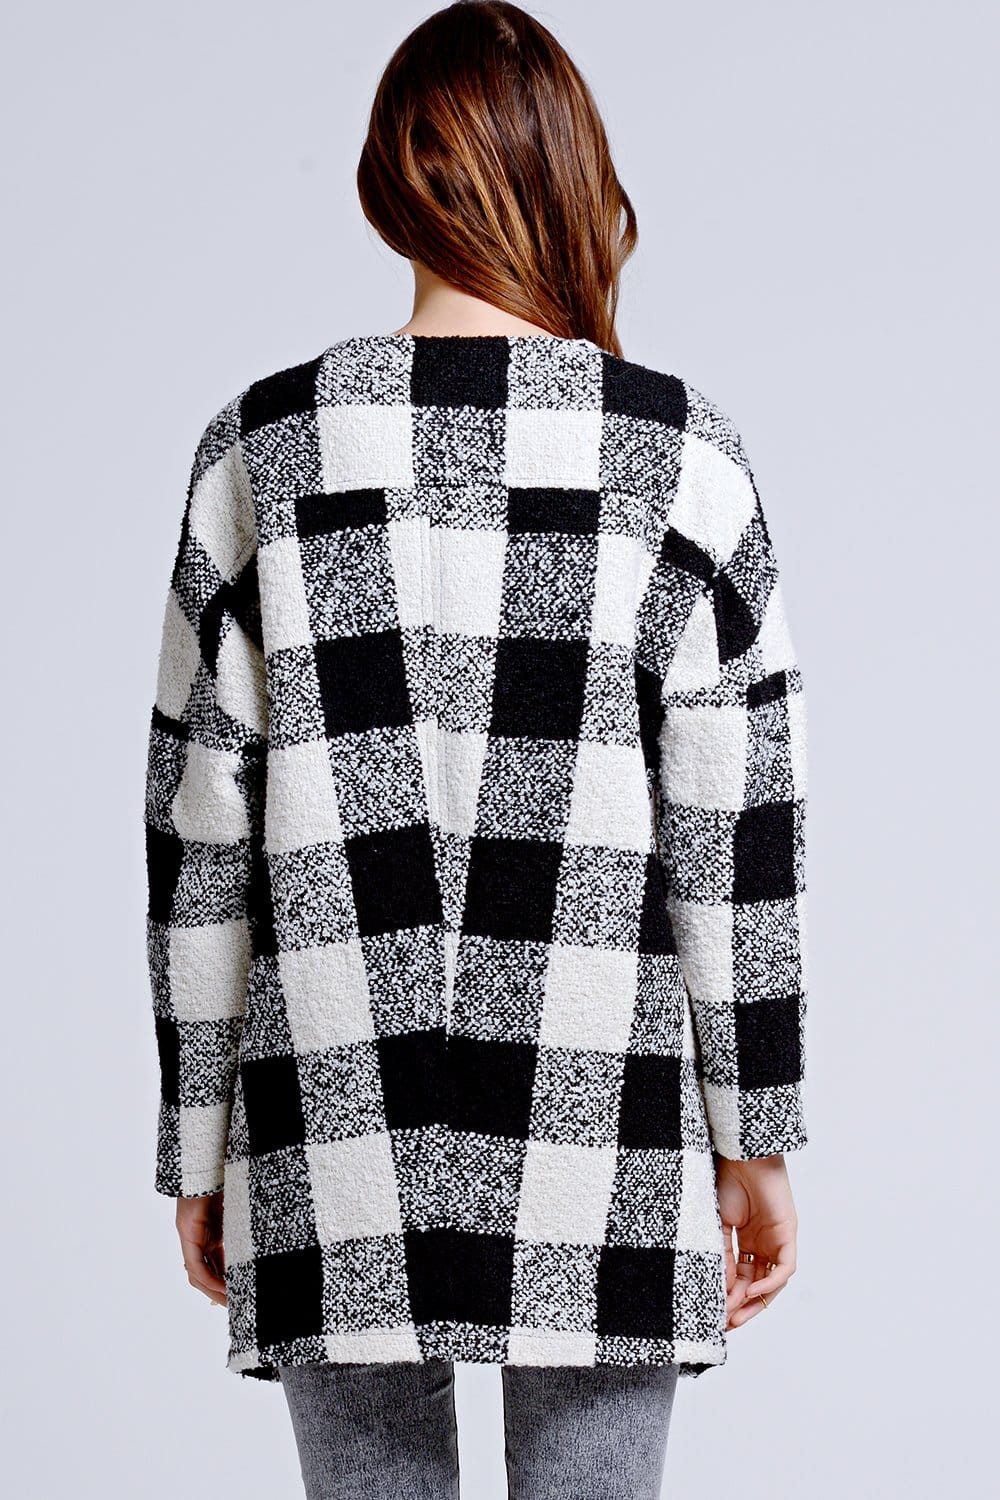 Find great deals on eBay for burberry cape. Shop with confidence. Skip to main content. eBay: Shop by category. Burberry Women's Check Cape Coats, Jackets & Vests for Women. Burberry Fleece Cape Coats, Jackets & Vests for Women. Burberry Cape Coats & Jackets Gray for Women. Feedback.